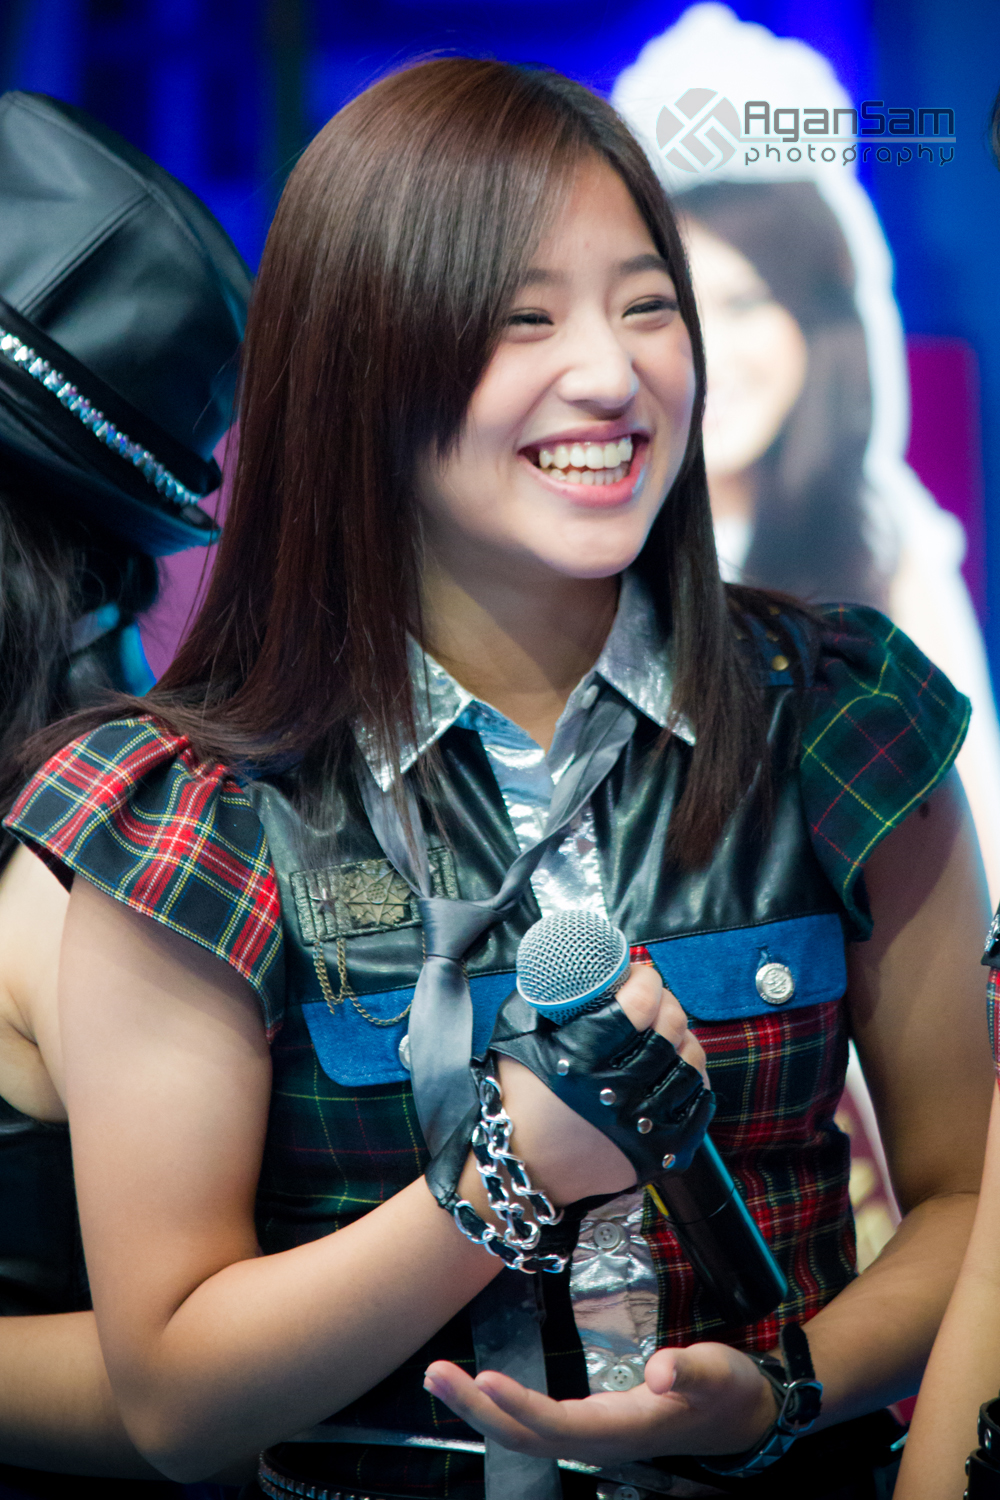 Nabilah dan melody jkt48 6457 likes Know About Nadila and JKT48 Here